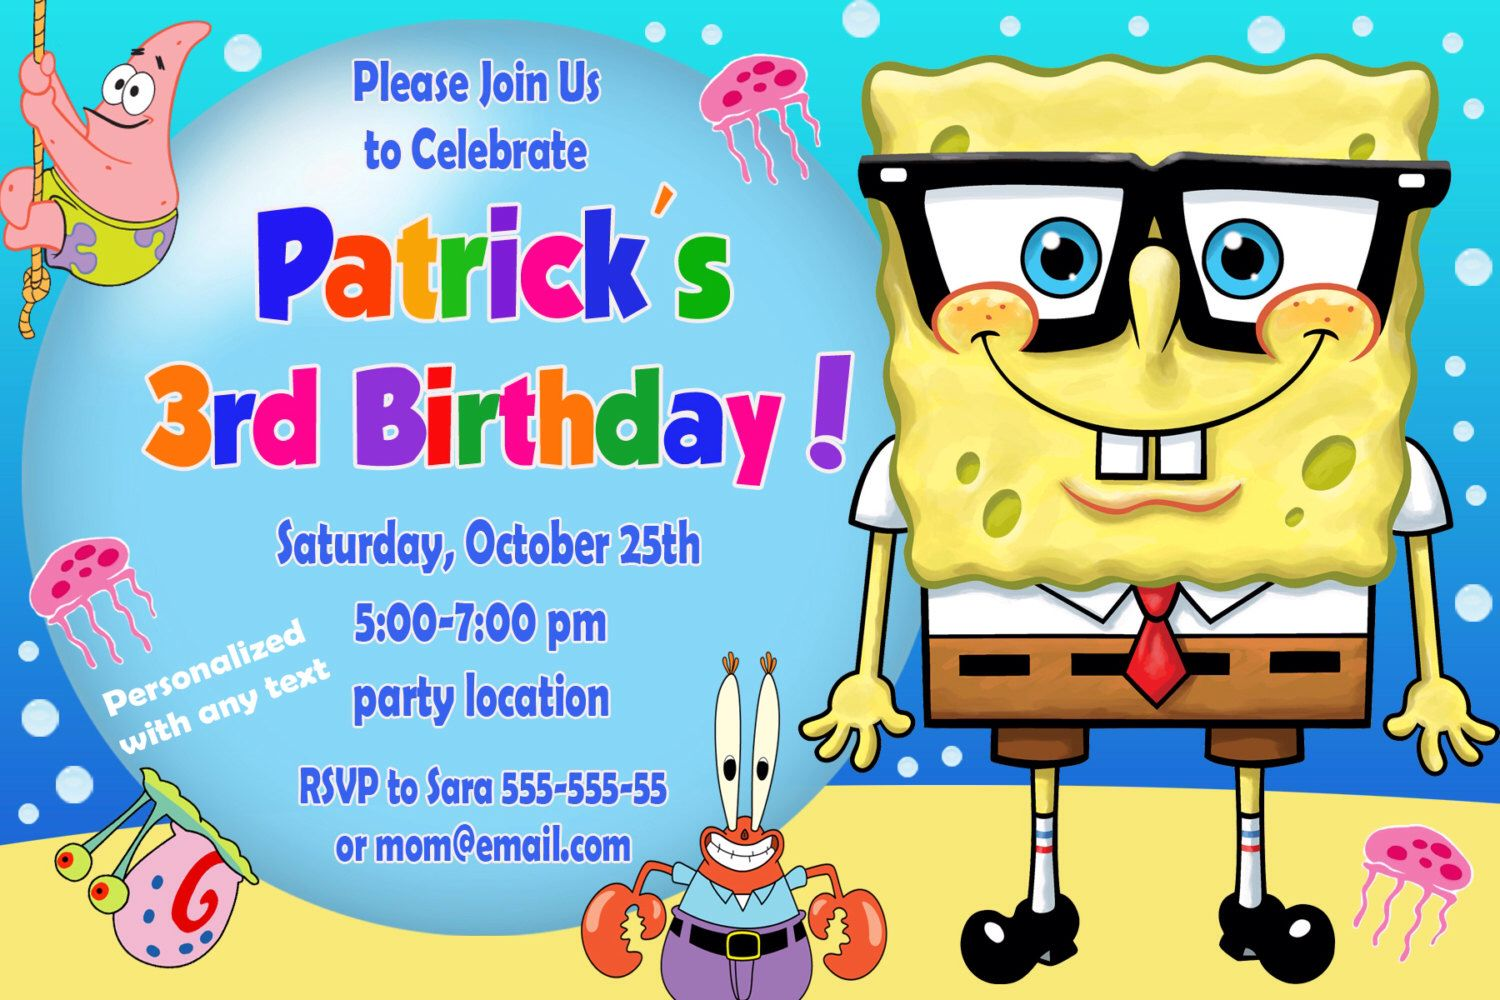 Spongebob birthday invitation spongebob invitation spongebob spongebob birthday invitation spongebob invitation spongebob squarepants invitation personalized digital file by designfromalexa on etsy filmwisefo